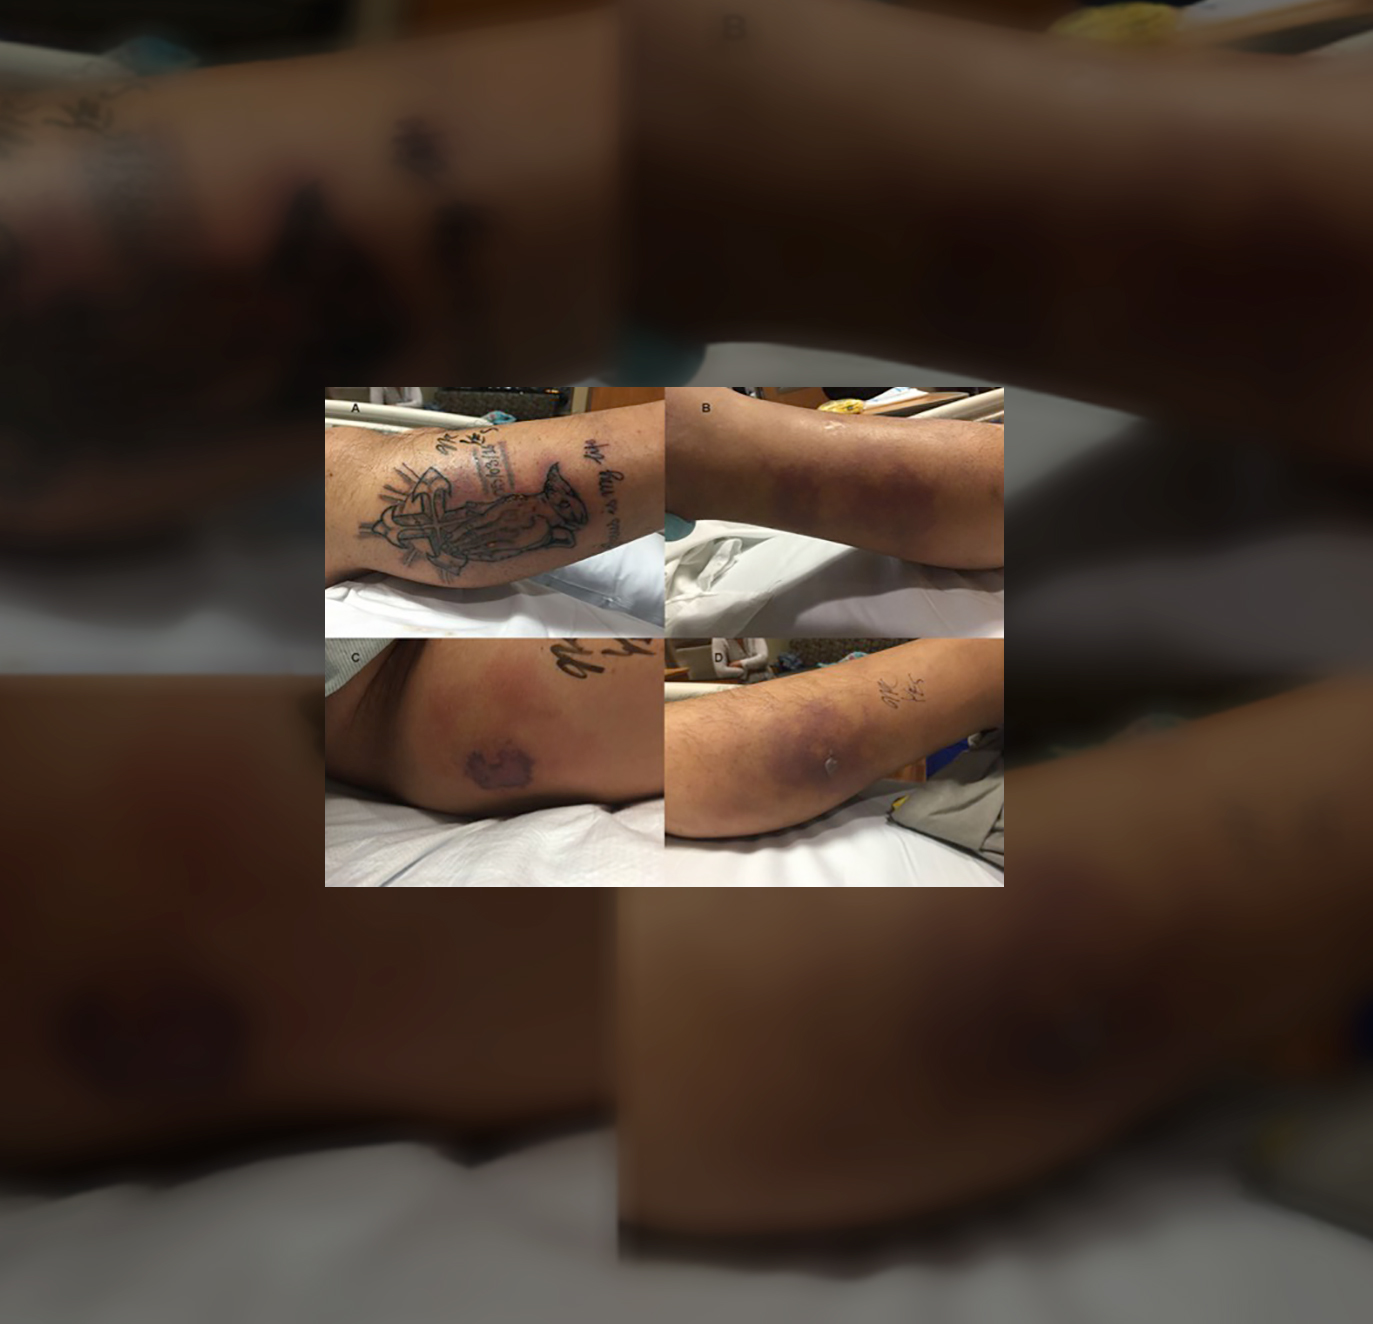 tattoo-infected-man-died